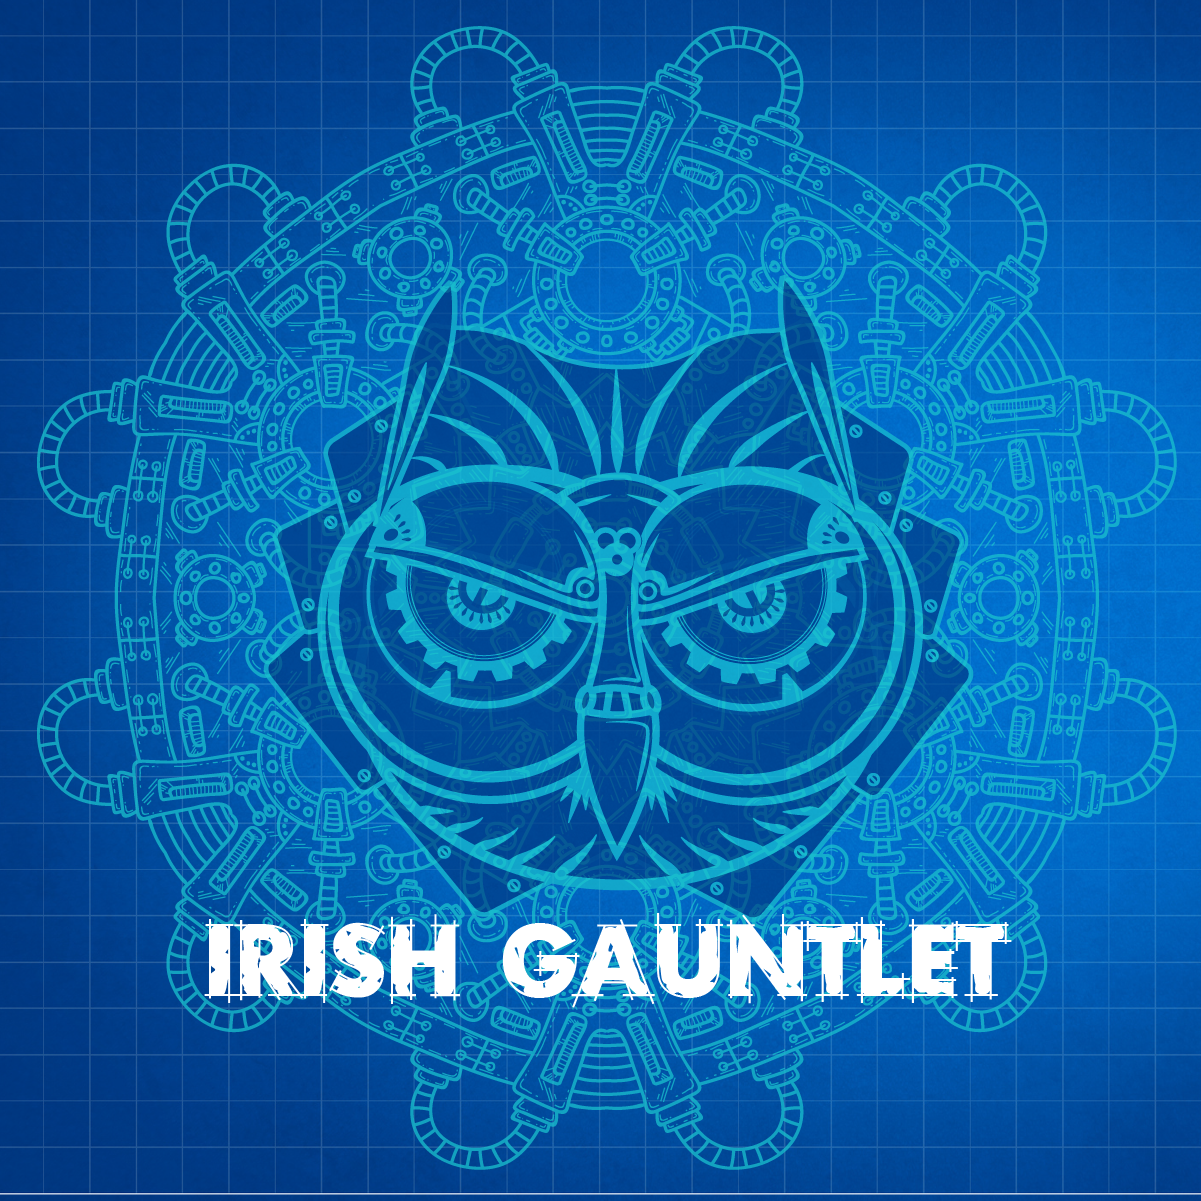 Irish Gauntlet 2018